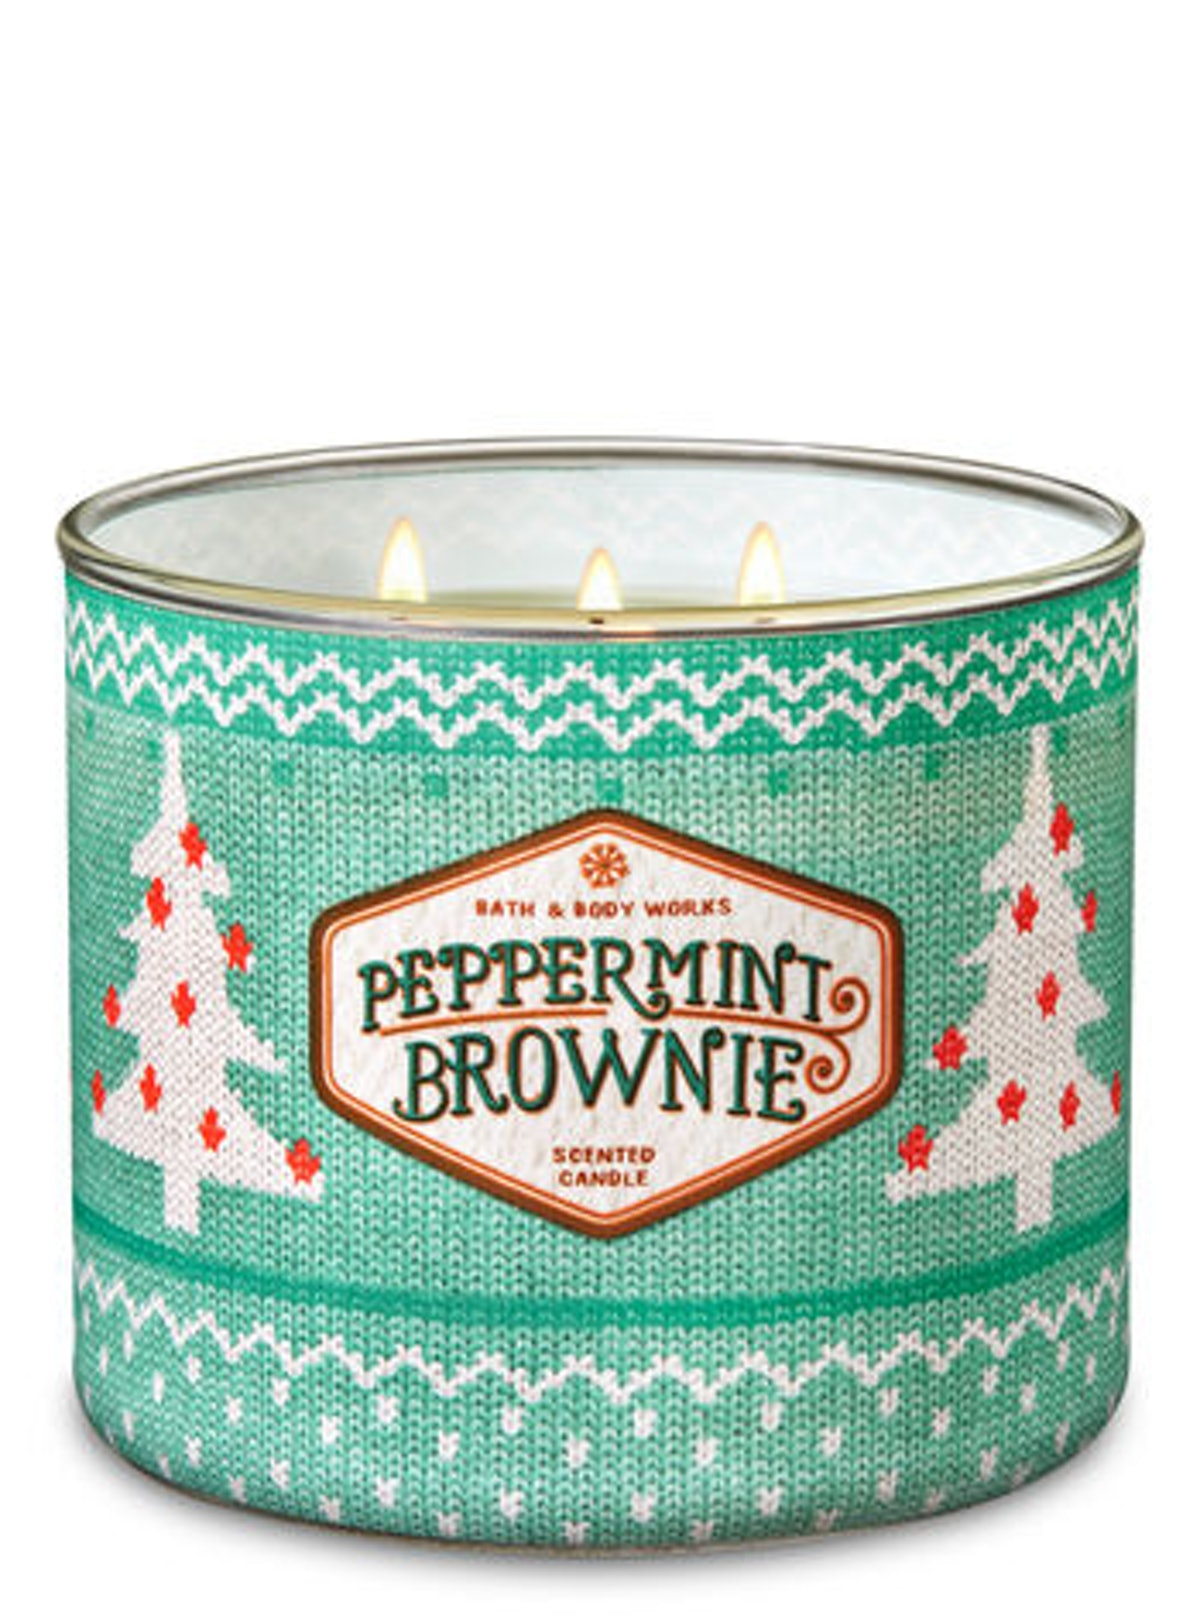 Peppermint Brownie 3-Wick Candle